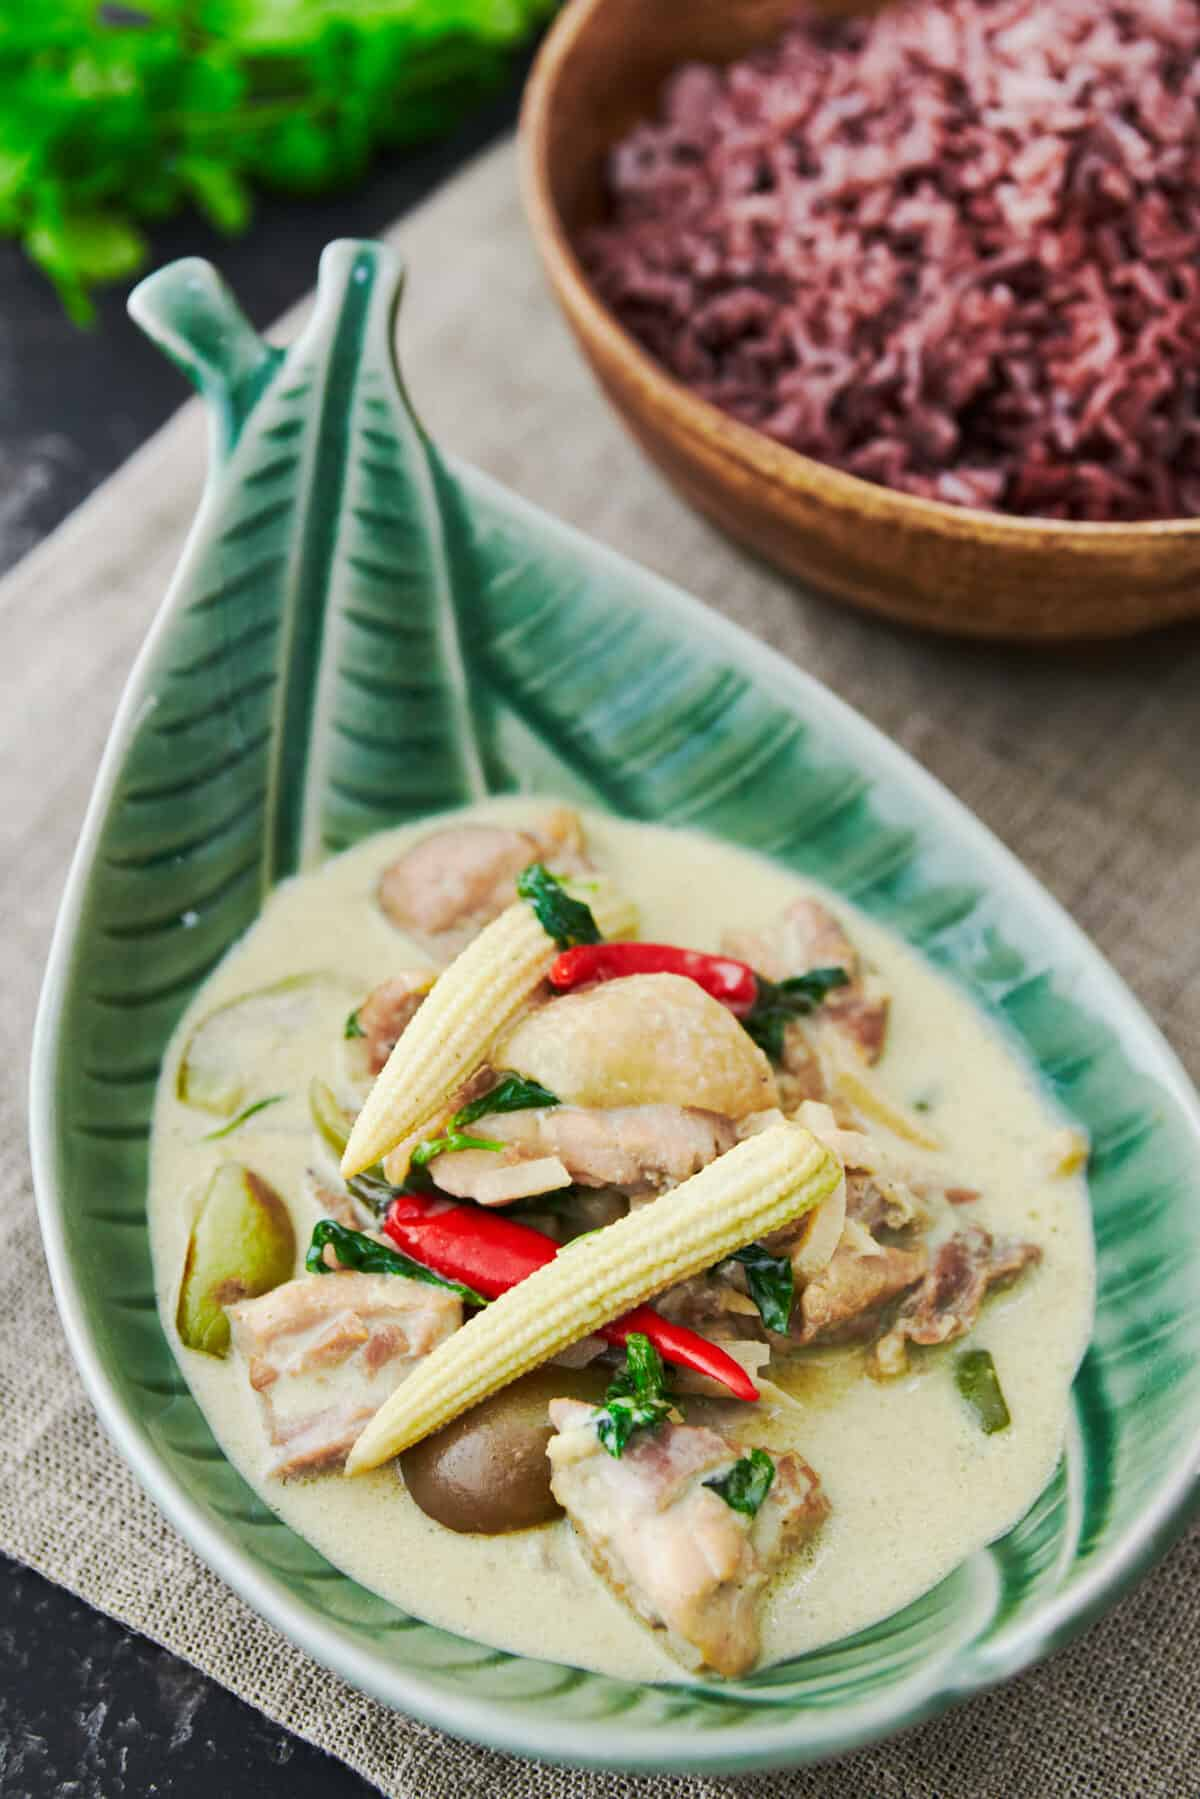 With tender chunks of chicken cooked in a fragrant green curry sauce with eggplant, baby corn and bamboo, this classic Thai recipe is a quick fix that's sure to please. Serve it with a side of riceberry for a stunning green and purple contrast.